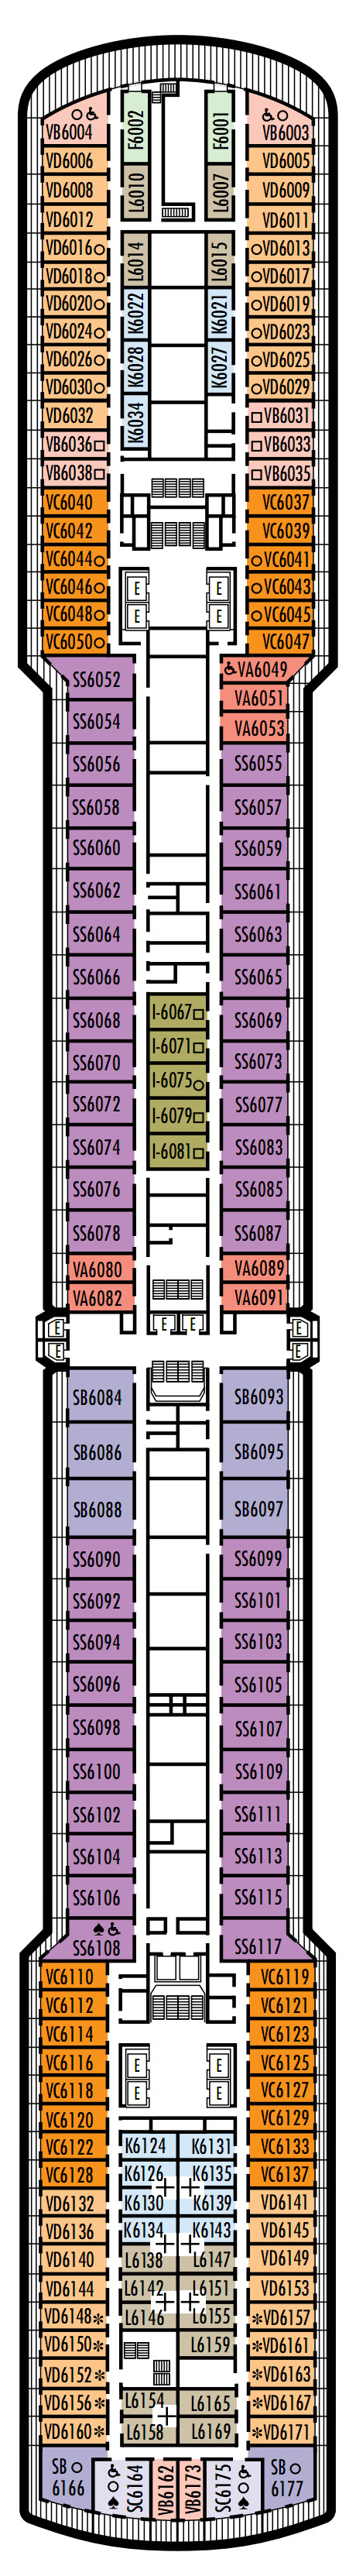 Westerdam Deck 6 - Upper Verandah Deck   layout